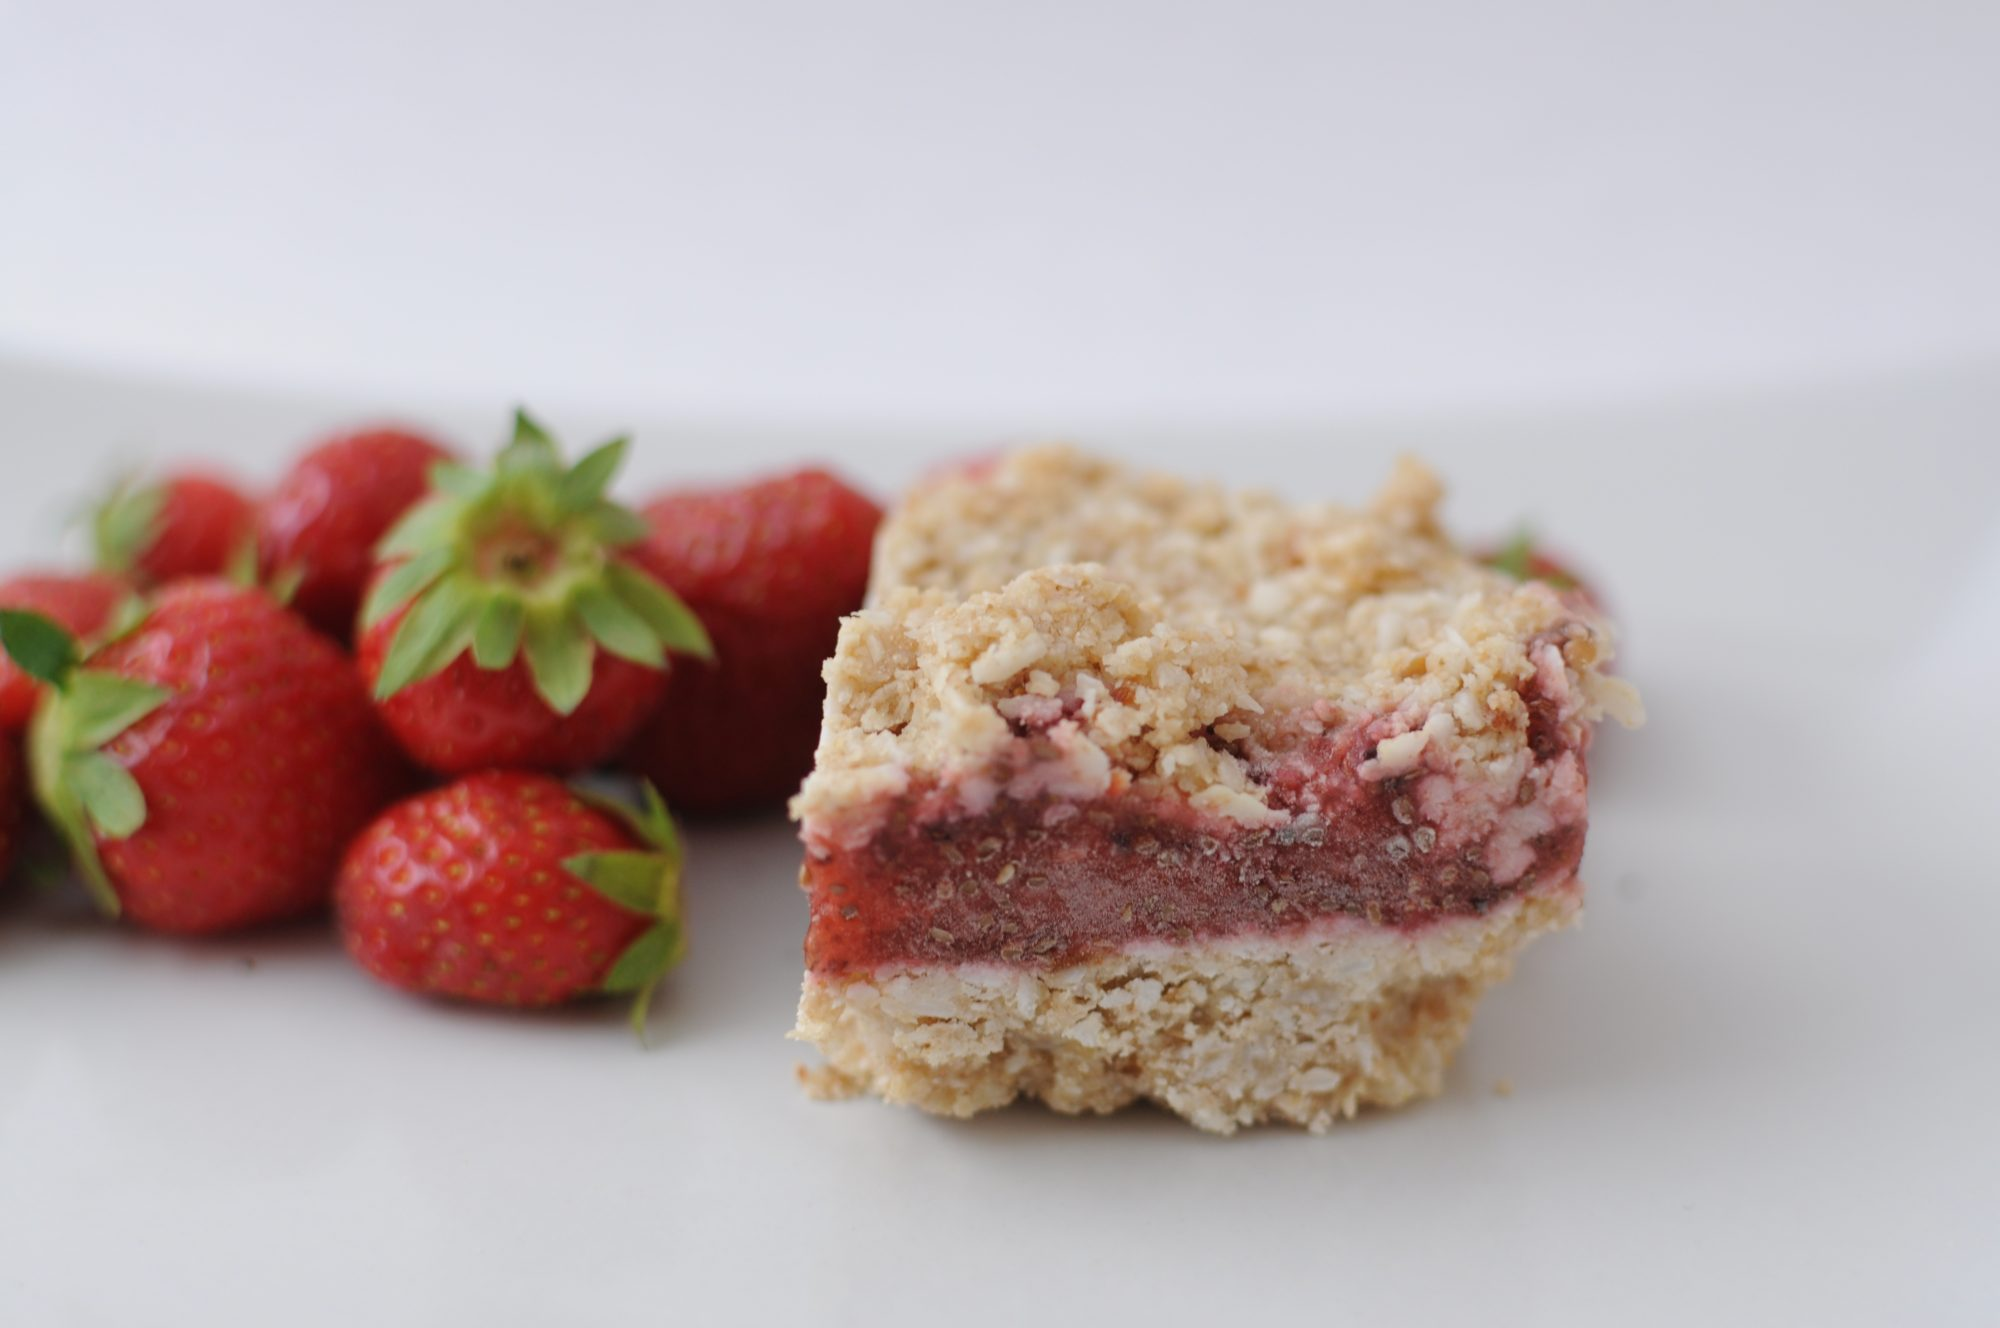 coconut-strawberry-cake-e1467645071350